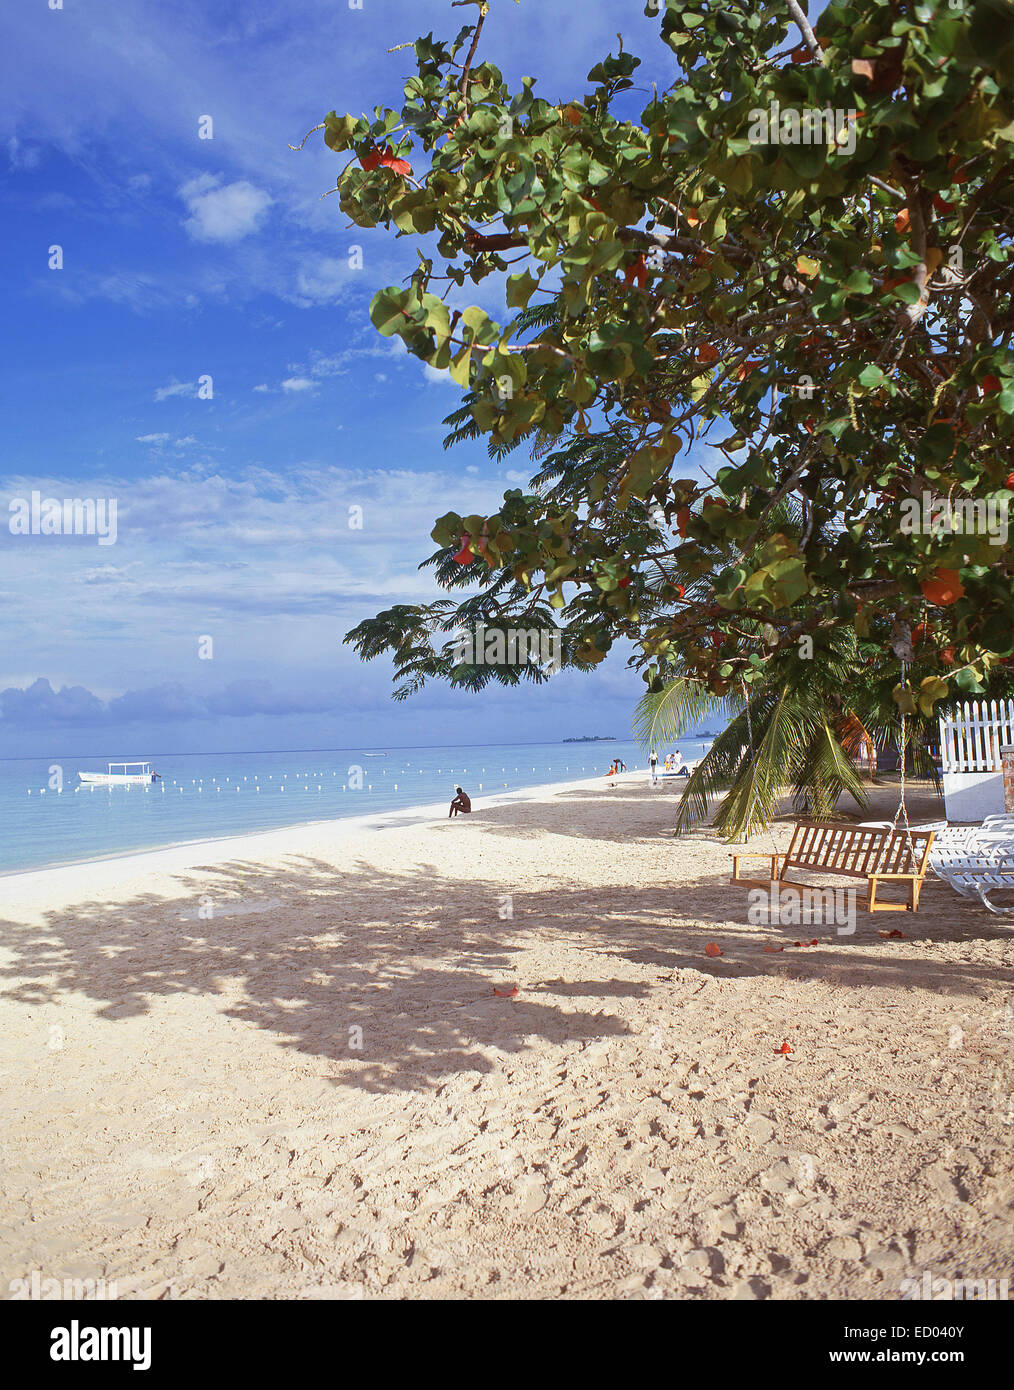 Negril Beach, Negril, Westmoreland Parish, Jamaica, Greater Antilles, Caribbean Stock Photo